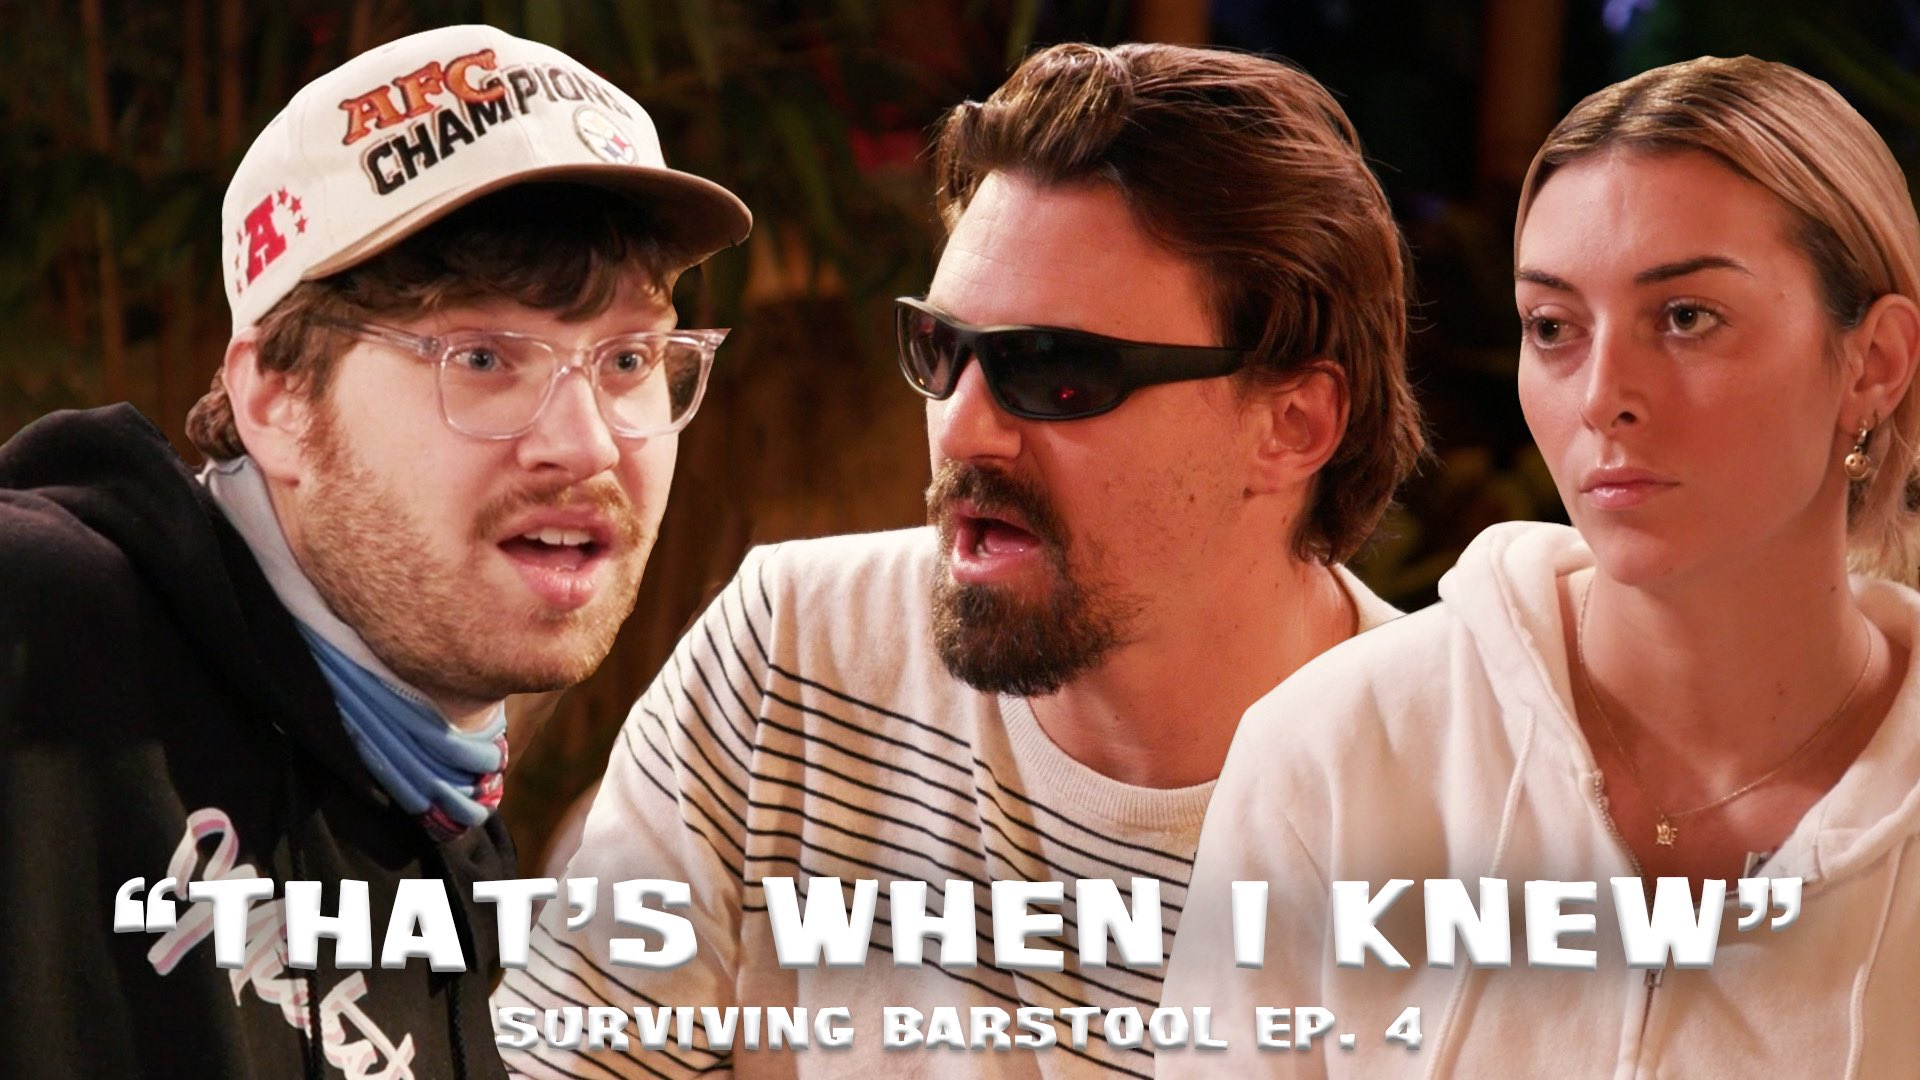 Surviving Barstool Episode 4 Power Rankings: Can We Get A Tommy Chant Going In The Chat?